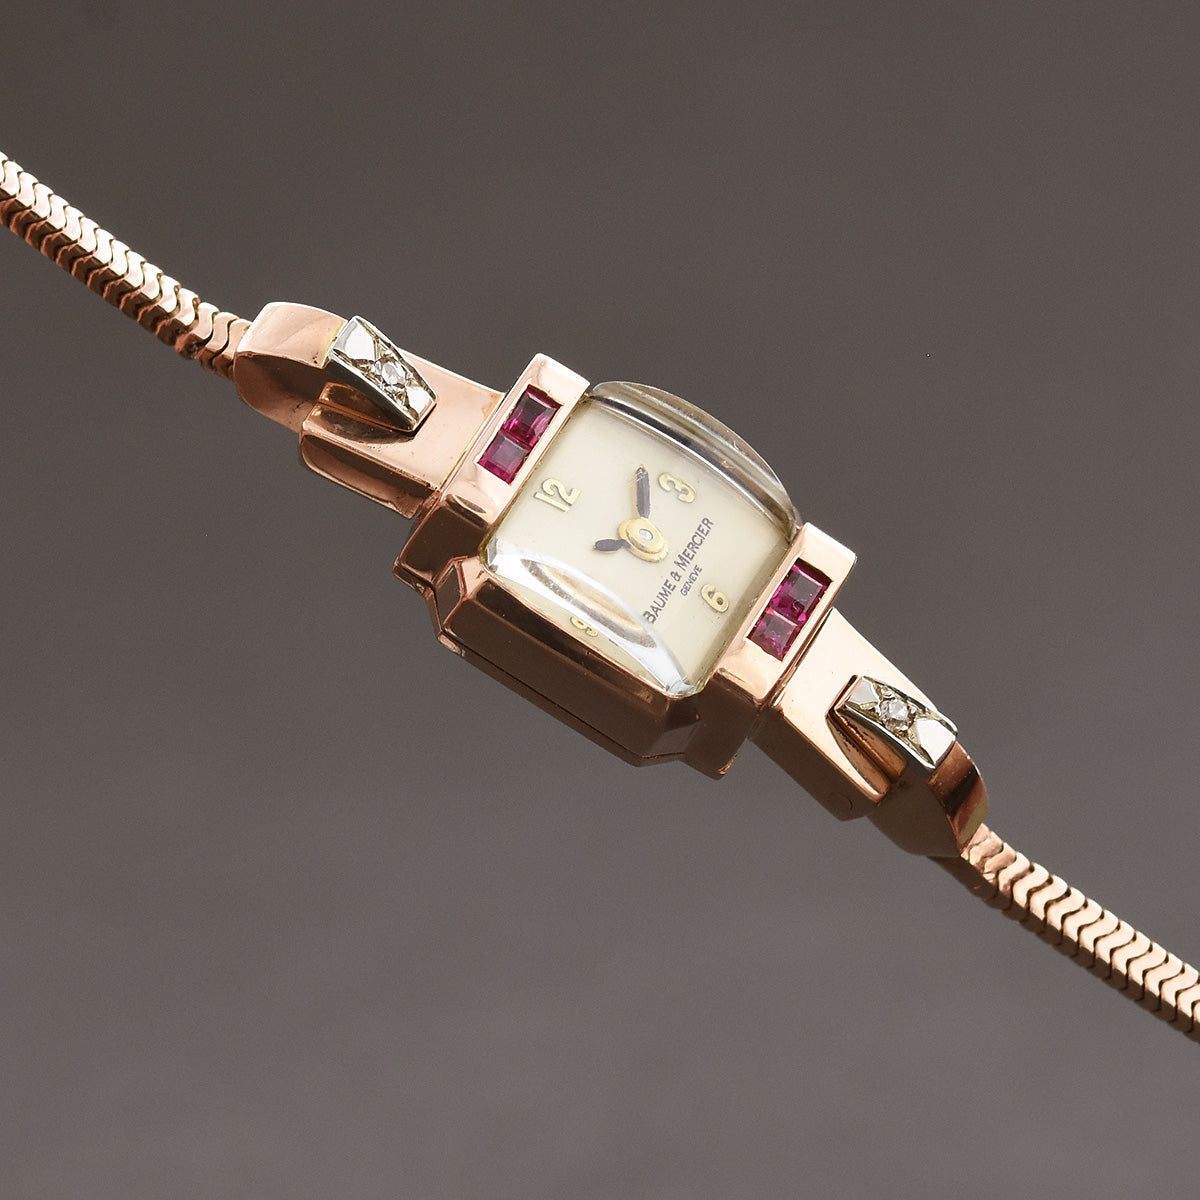 50s BAUME&MERCIER Ladies 14K Gold/Diamonds Rubies Cocktail Watch